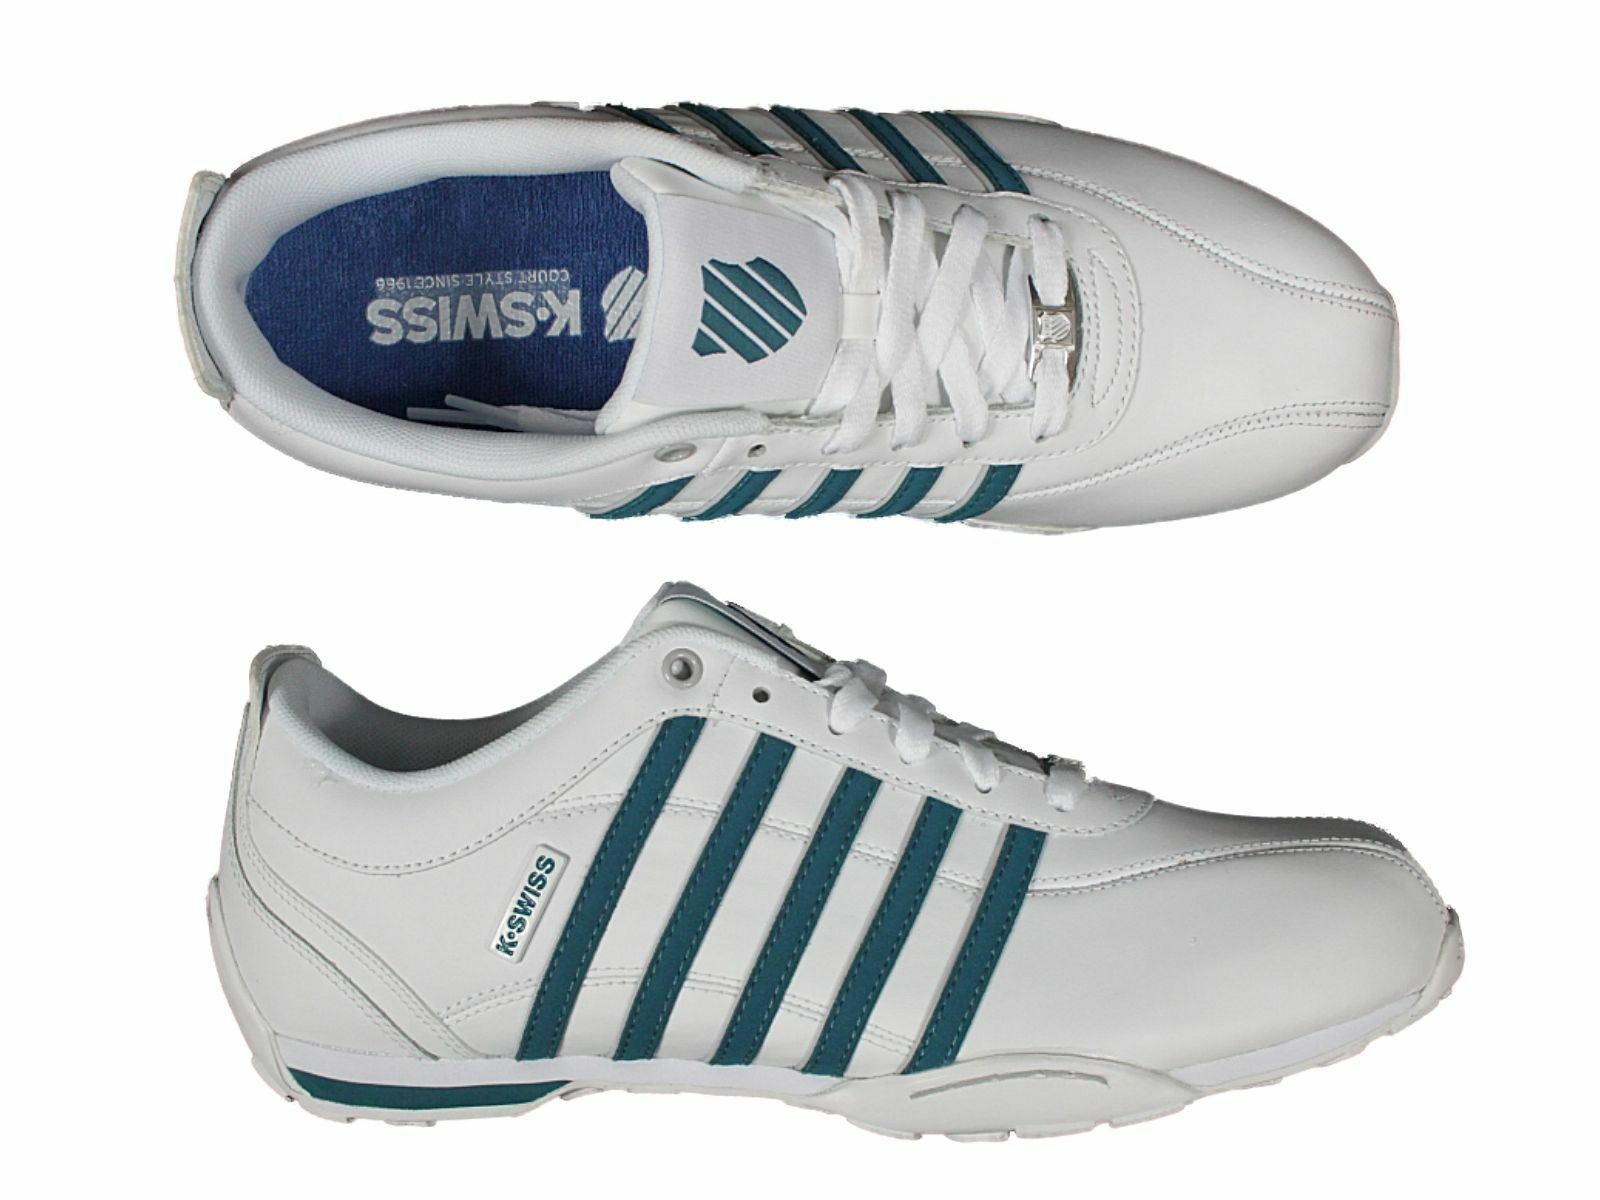 K SWISS BNWT TRAINERS ARVEE LACE UP IN CLEARANCE WHITE BLACK GREY BROWN CLEARANCE IN PRICE c7f8a4